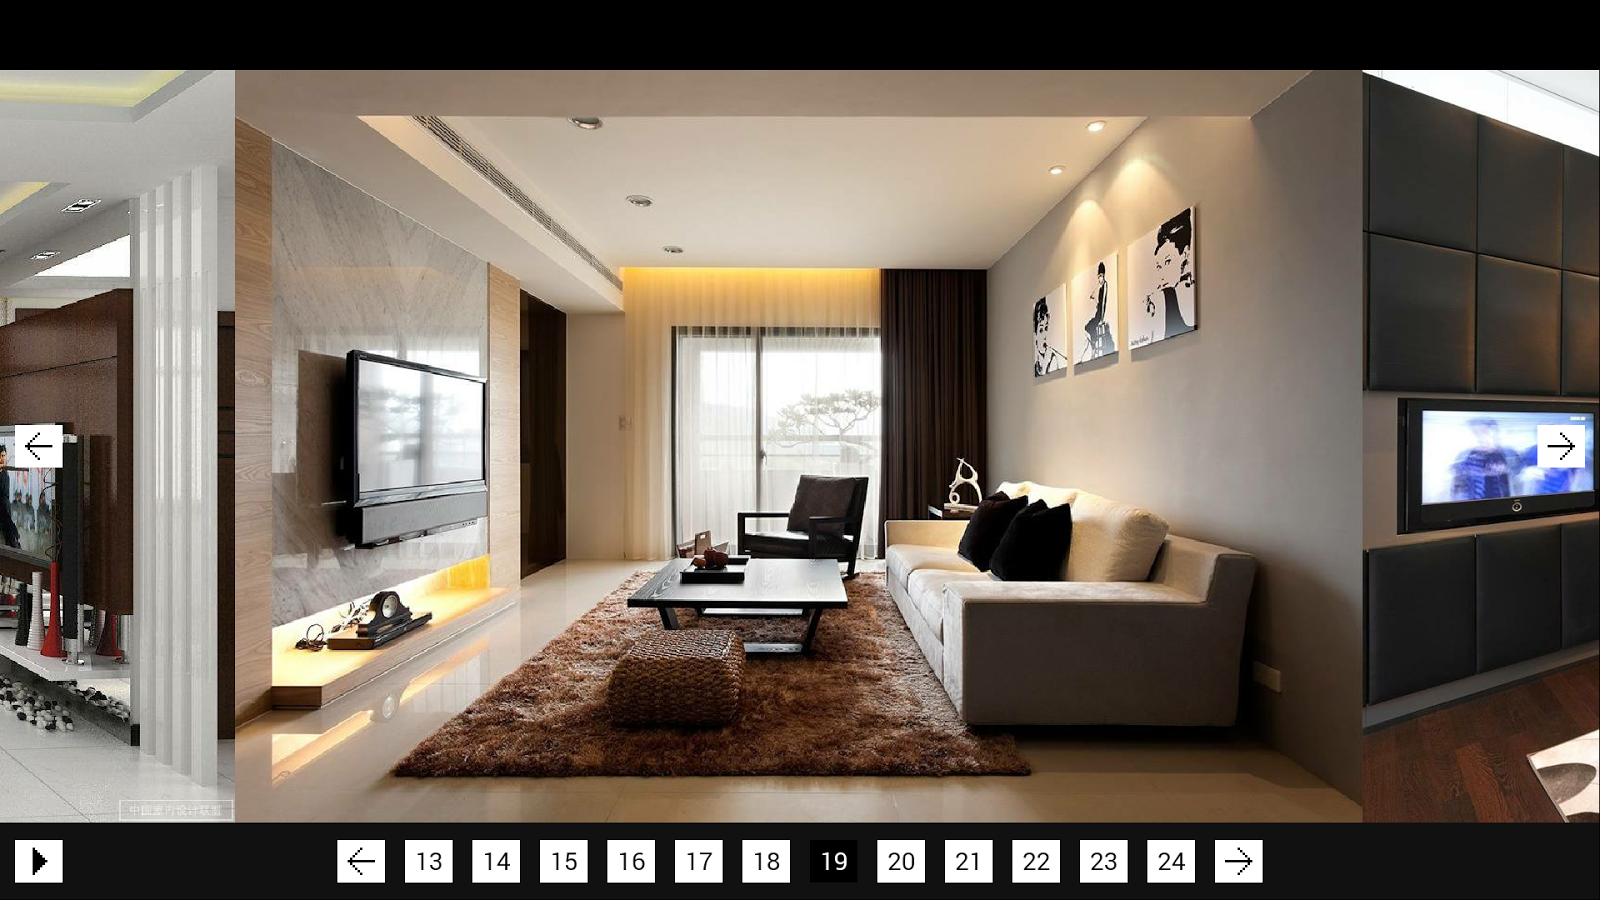 Home interior design android apps on google play Design interior of house